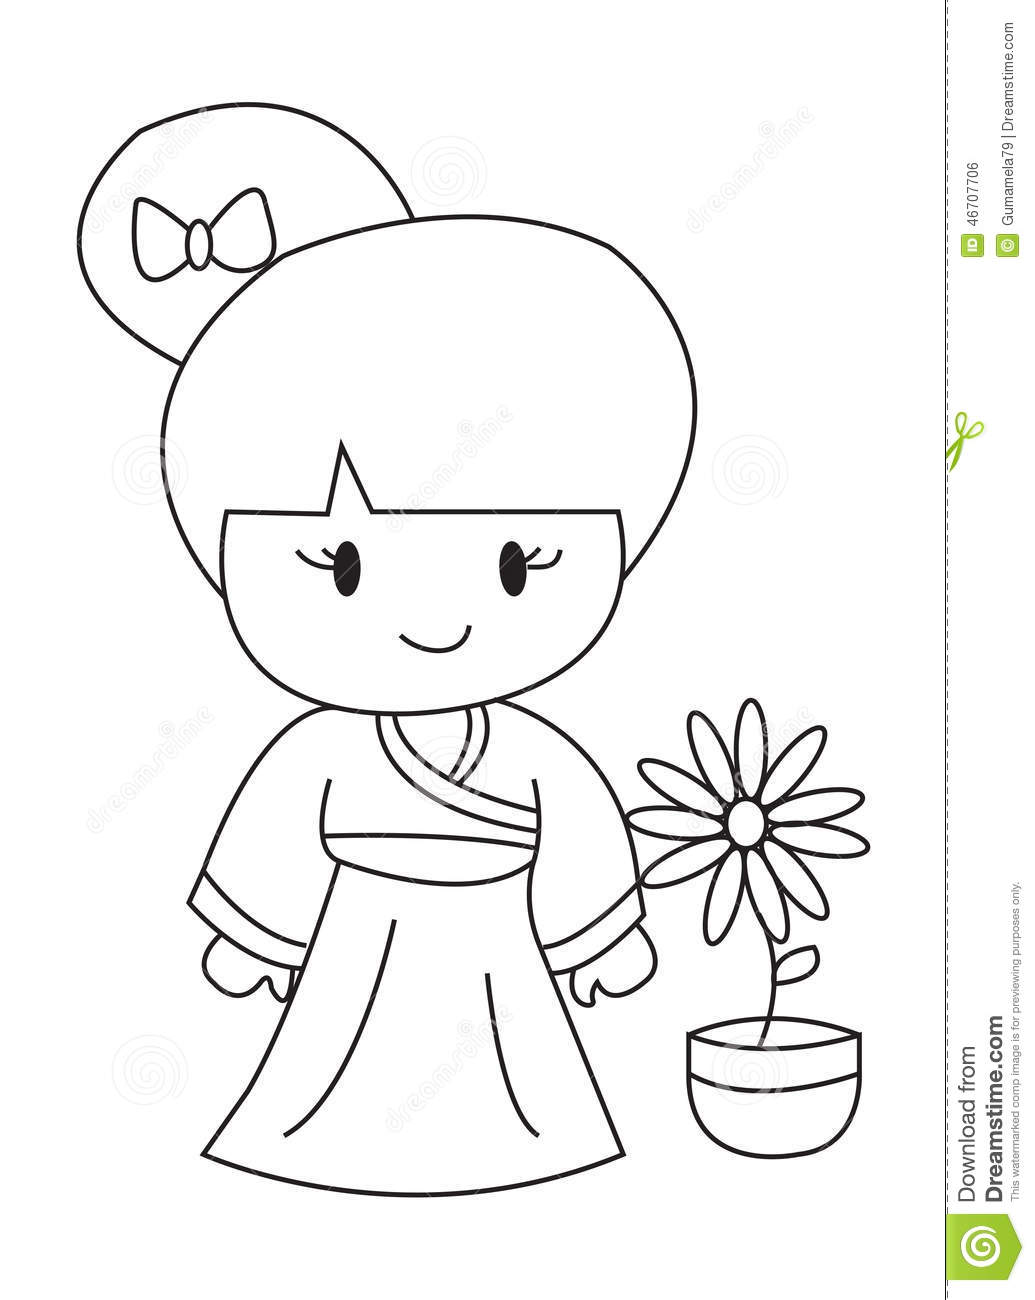 Royalty Free Stock Image Hand Drawn Coloring Page Of A